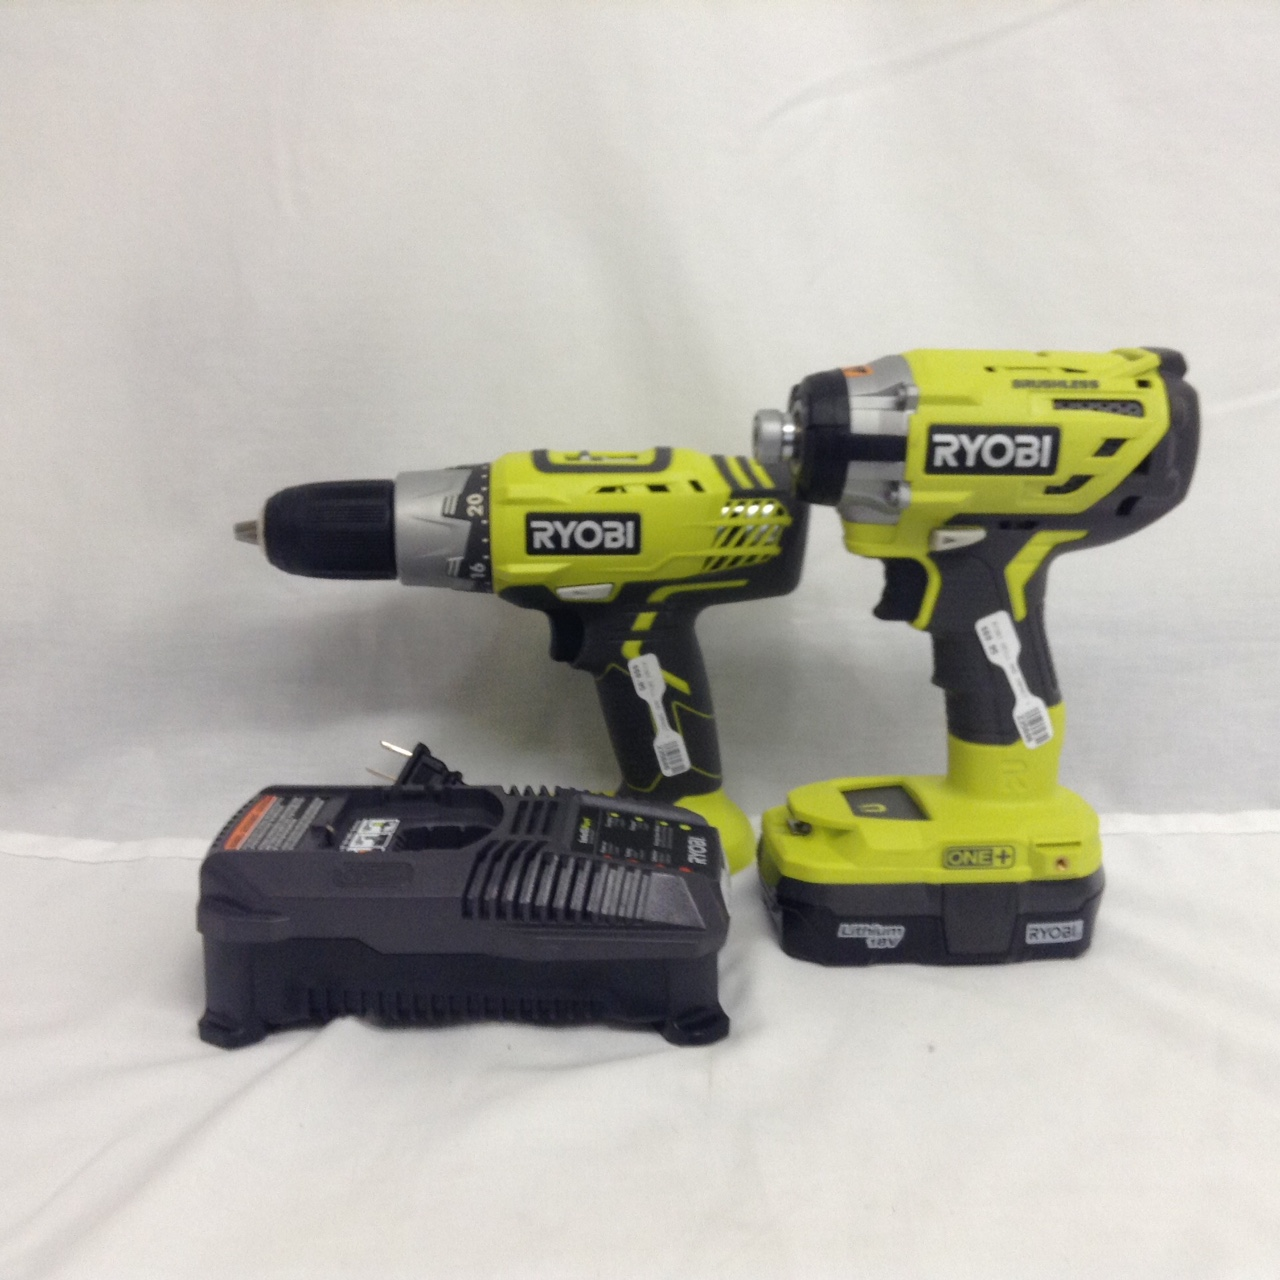 Ryobi Drill And Impact 18v W/ Charger